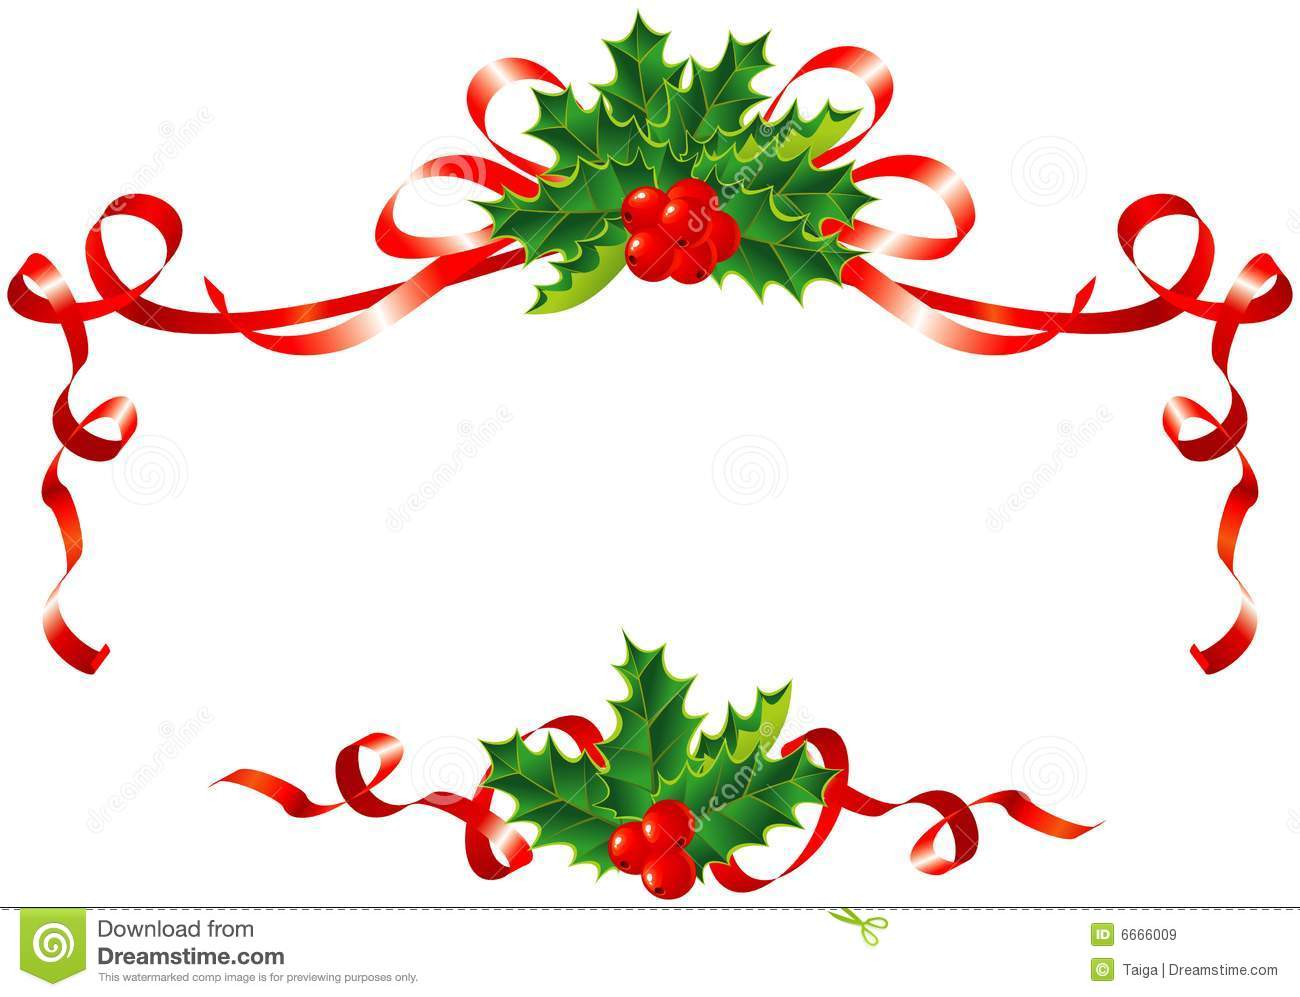 Bandes de houx de d coration de no l de cadre images for Decoration de noel exterieur gonflable